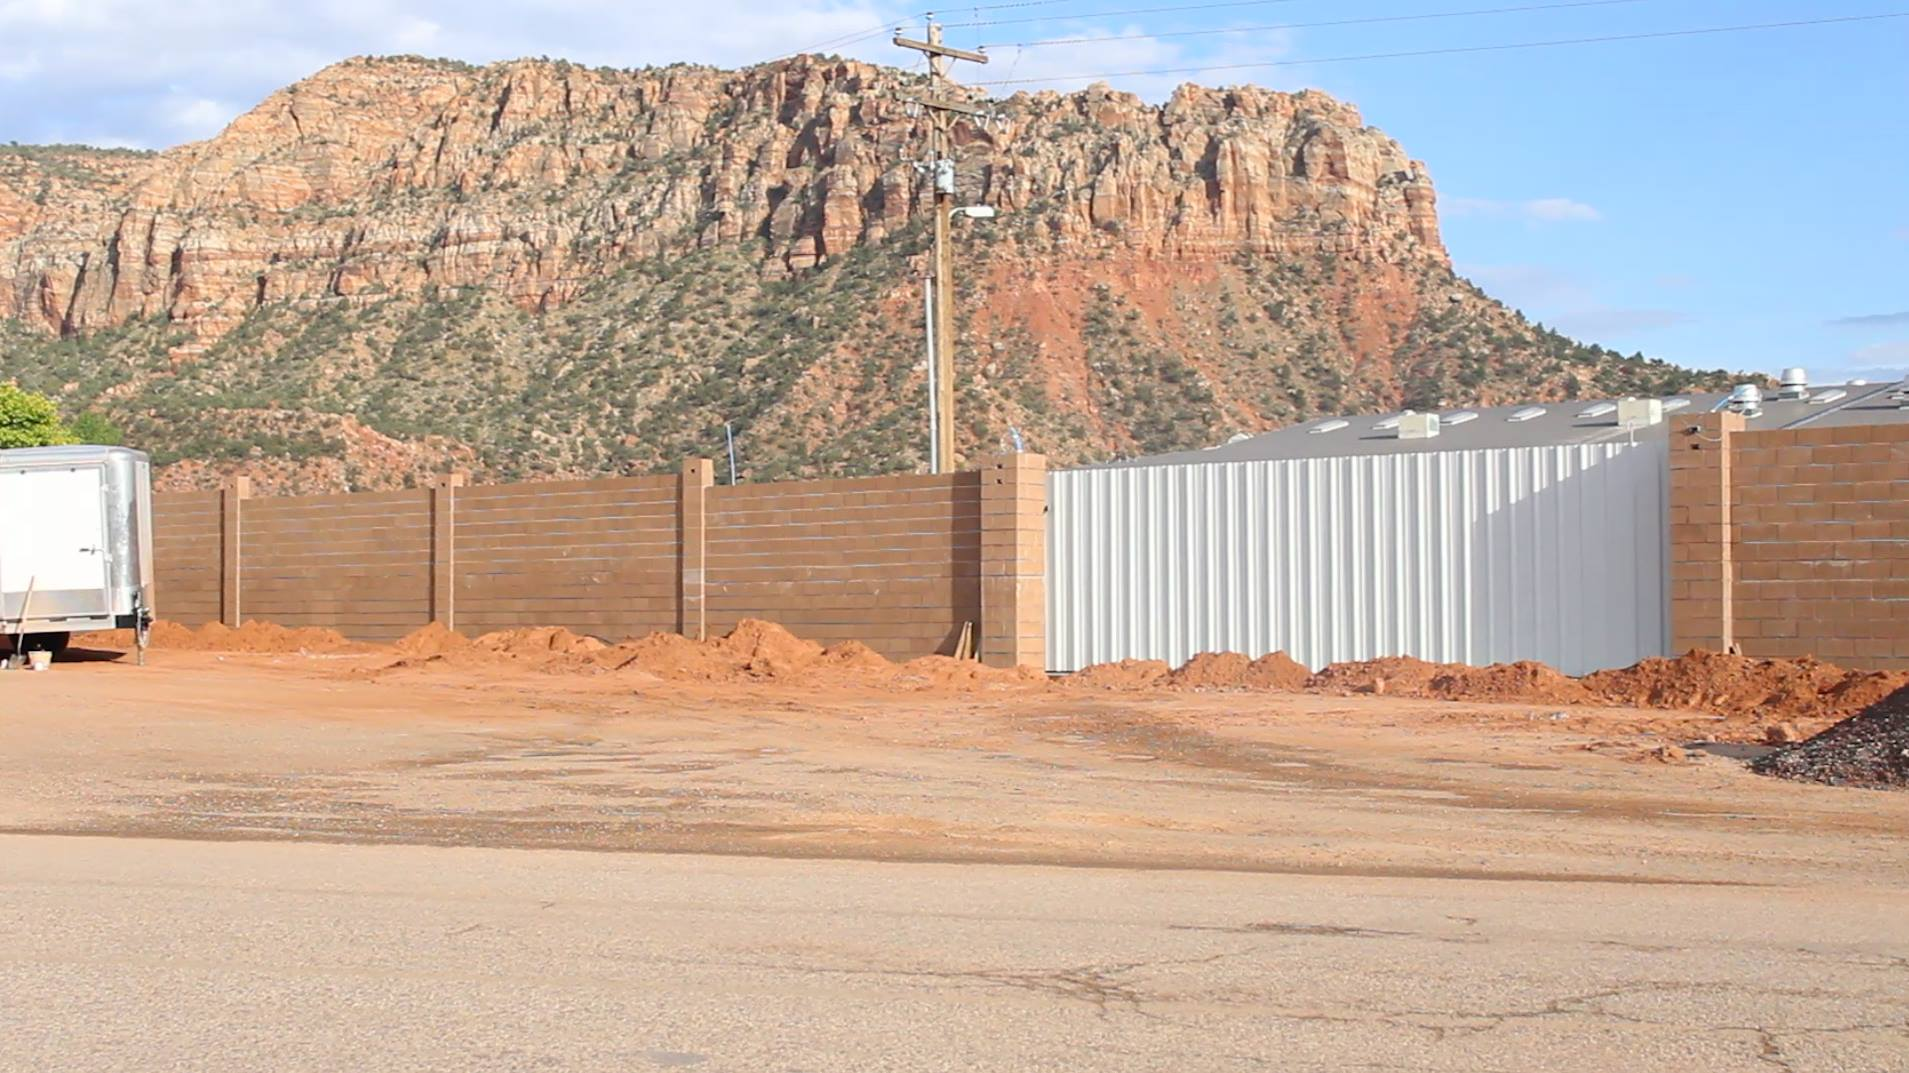 Left: Wall appears to be complete on July 4 surrounding the Leroy S. Johnson meeting house of the FLDS Church, built without explanation to the public during the week of July 1, some say in response to a Short Creek community 4th of July celebration. Colorado City, Arizona, July 4, 2015 | Photo by Nataly Burdick, St. George News